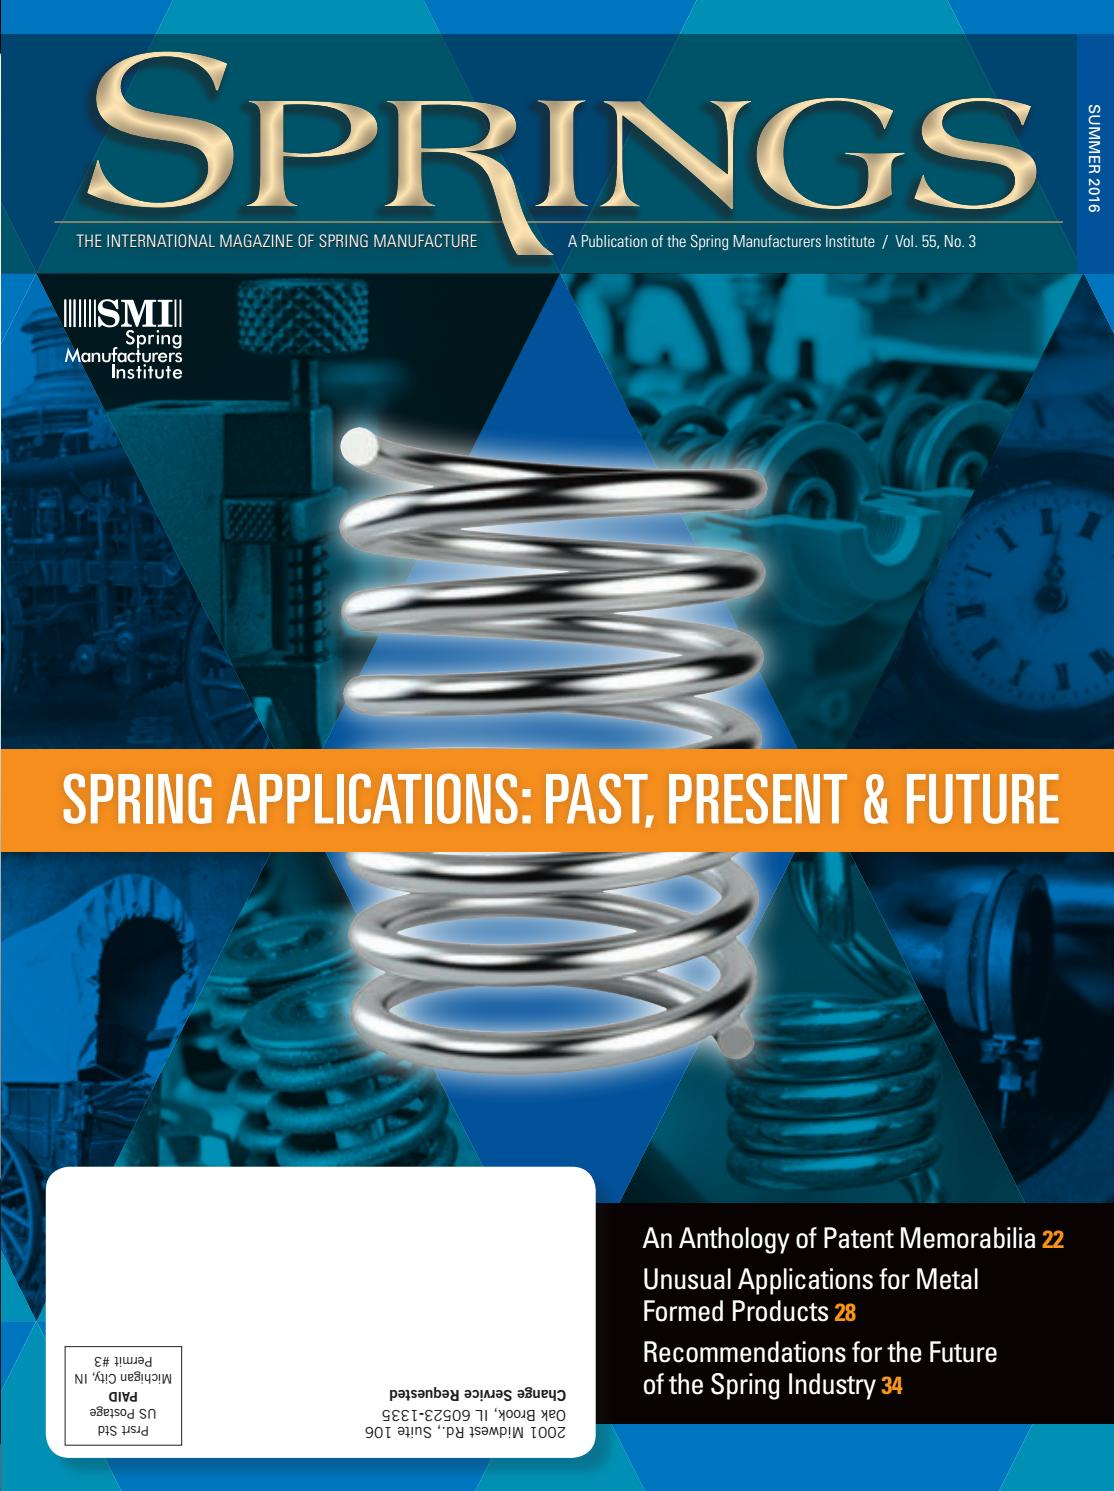 Springs summer 2016 vol 55 no3 by Spring Manufacturers Institute - issuu